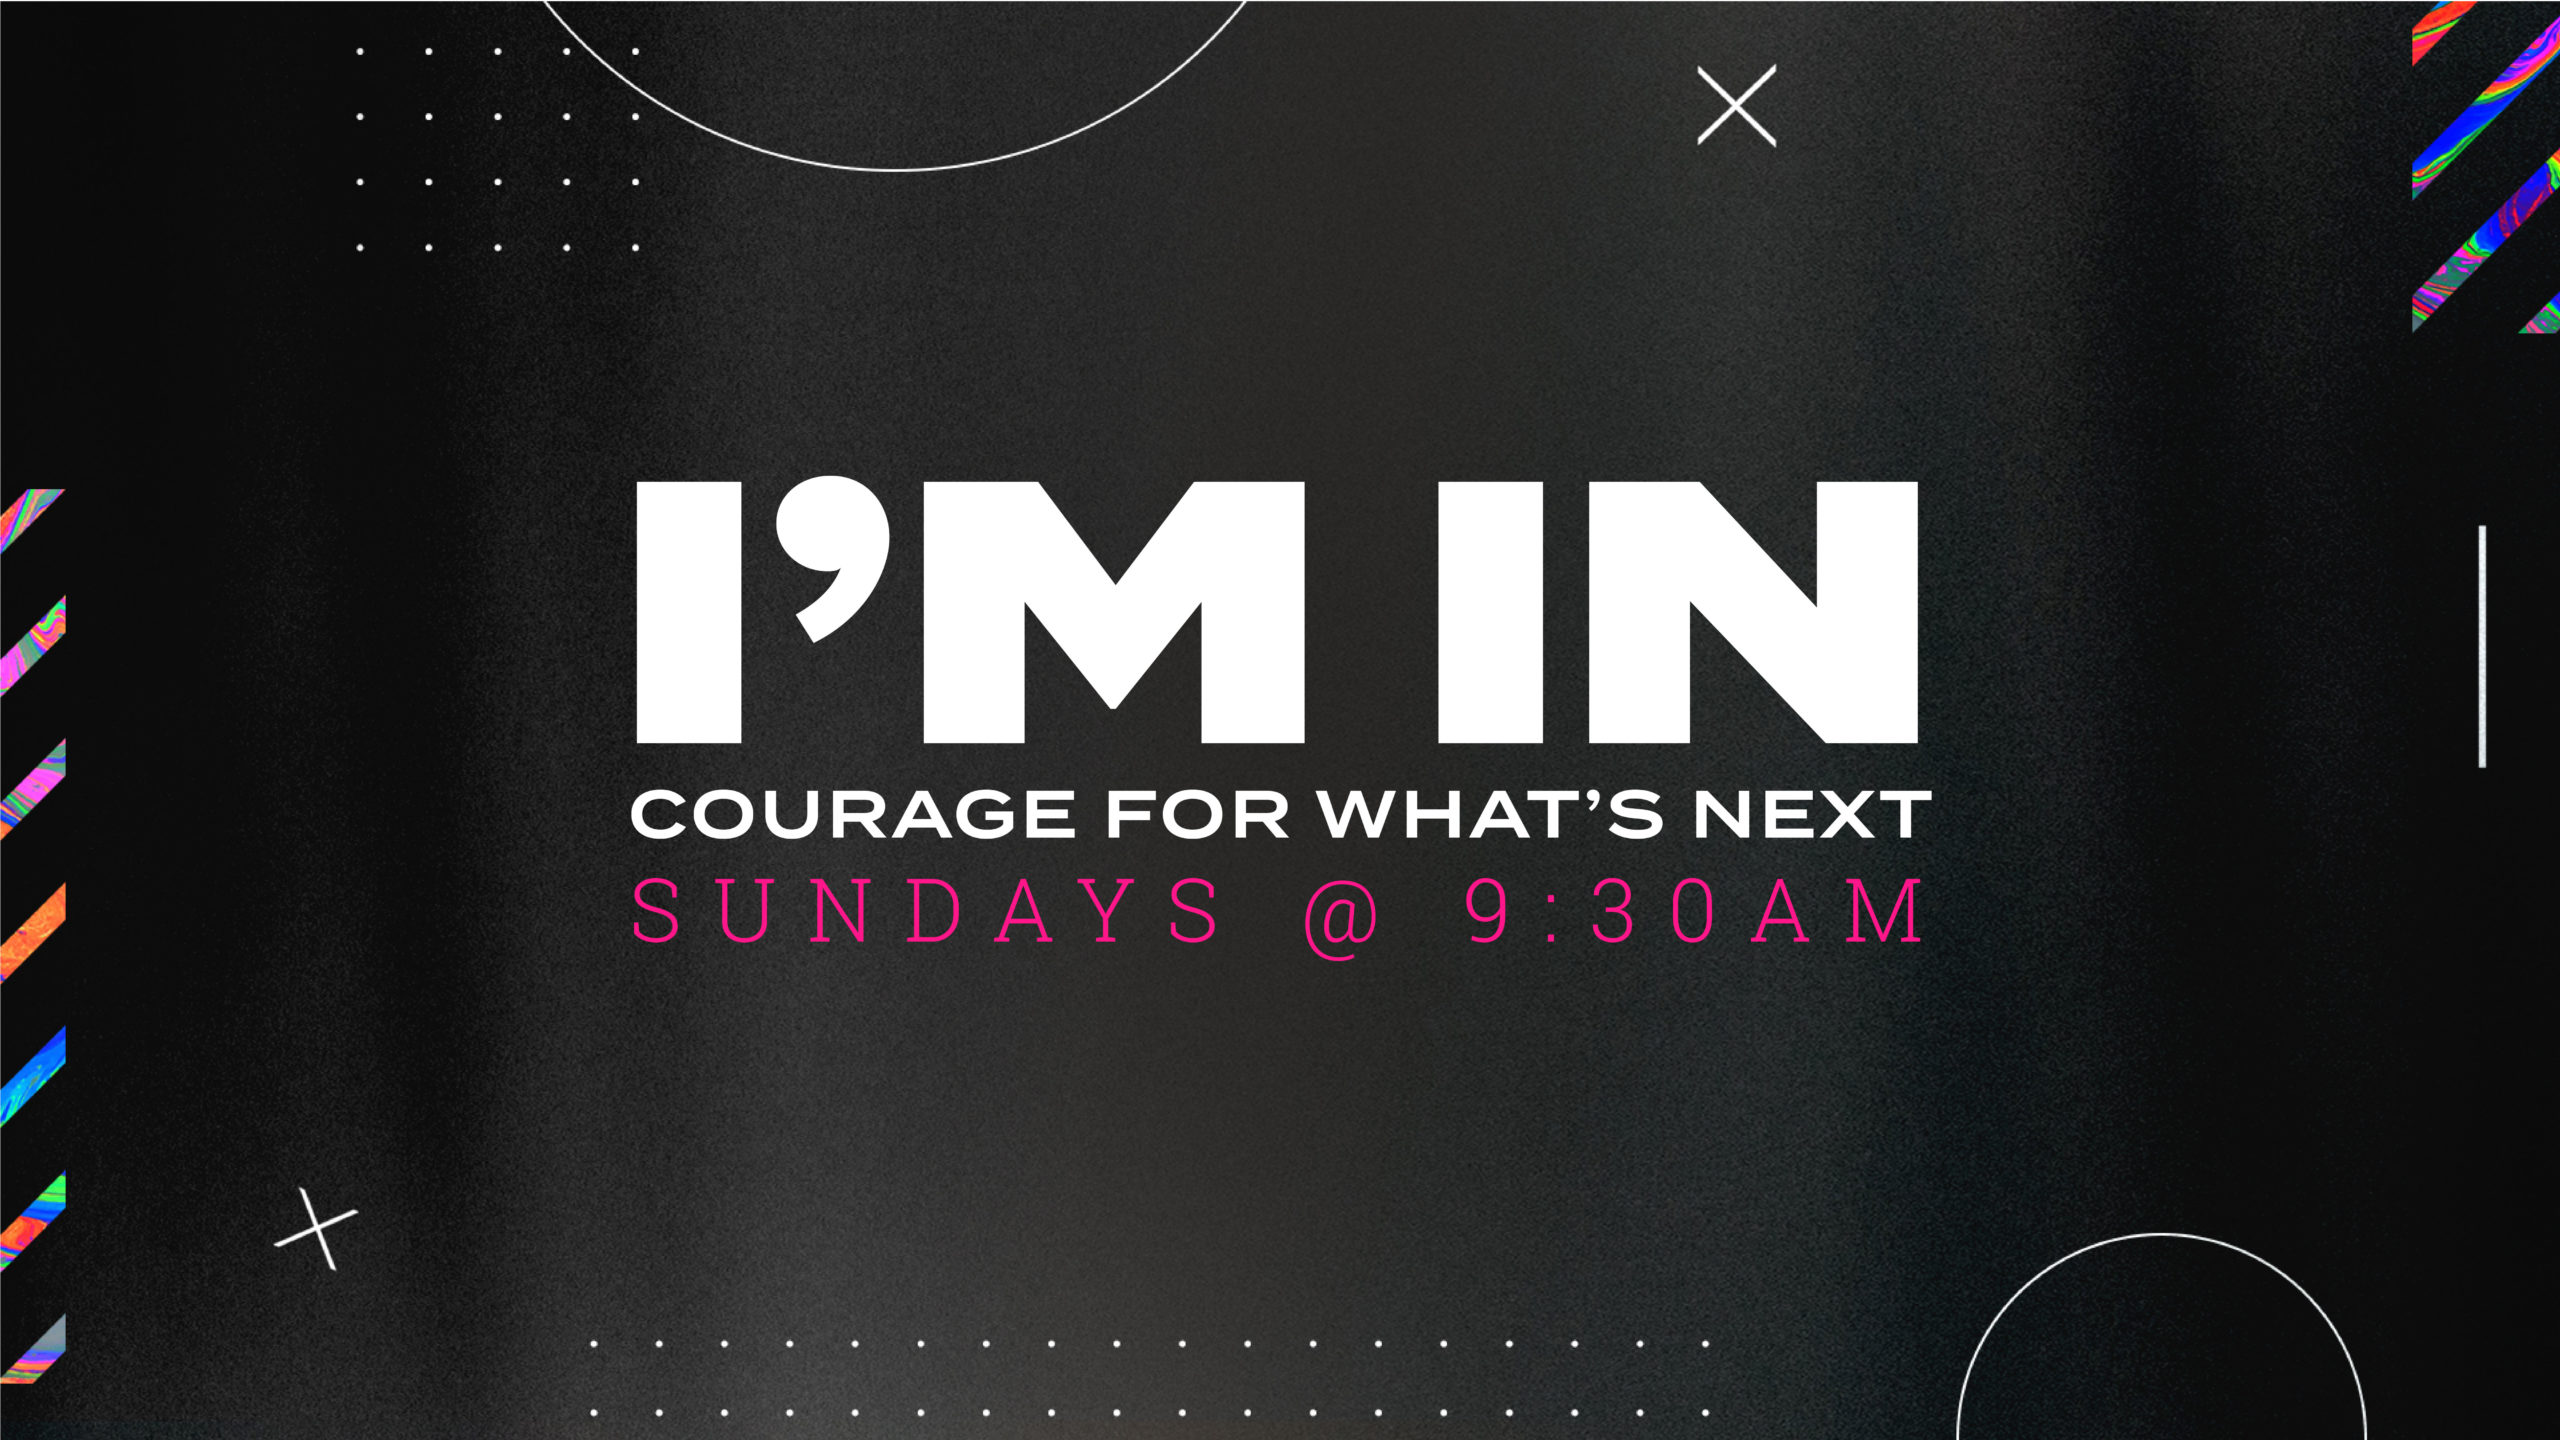 I'm In - Courage For What's Next